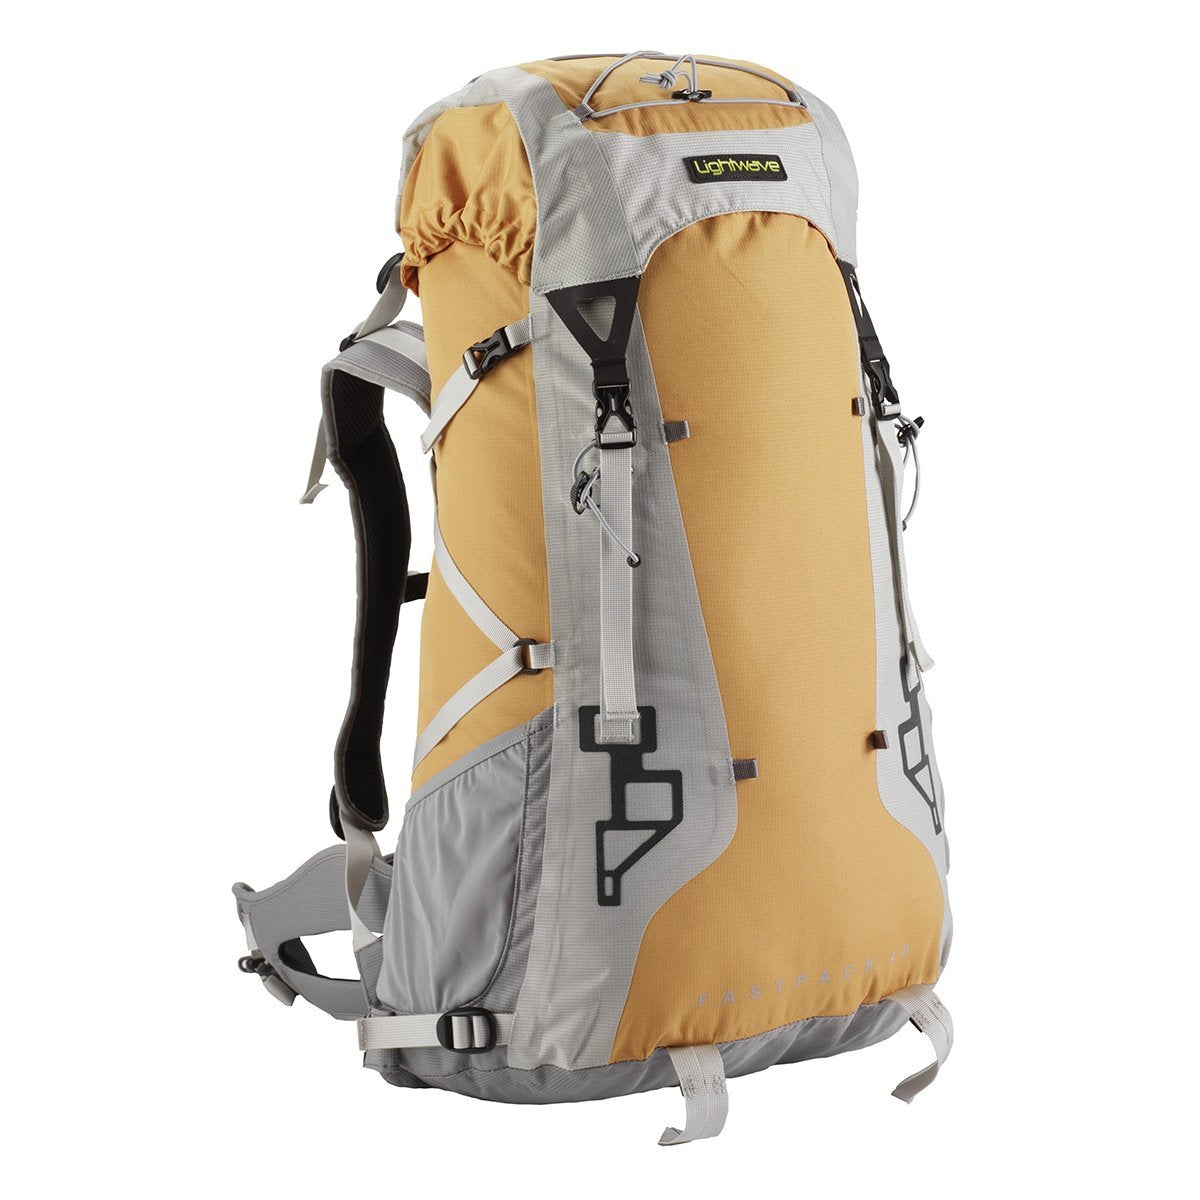 Lightwave » Fastpack 40 Rucksack - Ultra-lightweight Hiking Backpack